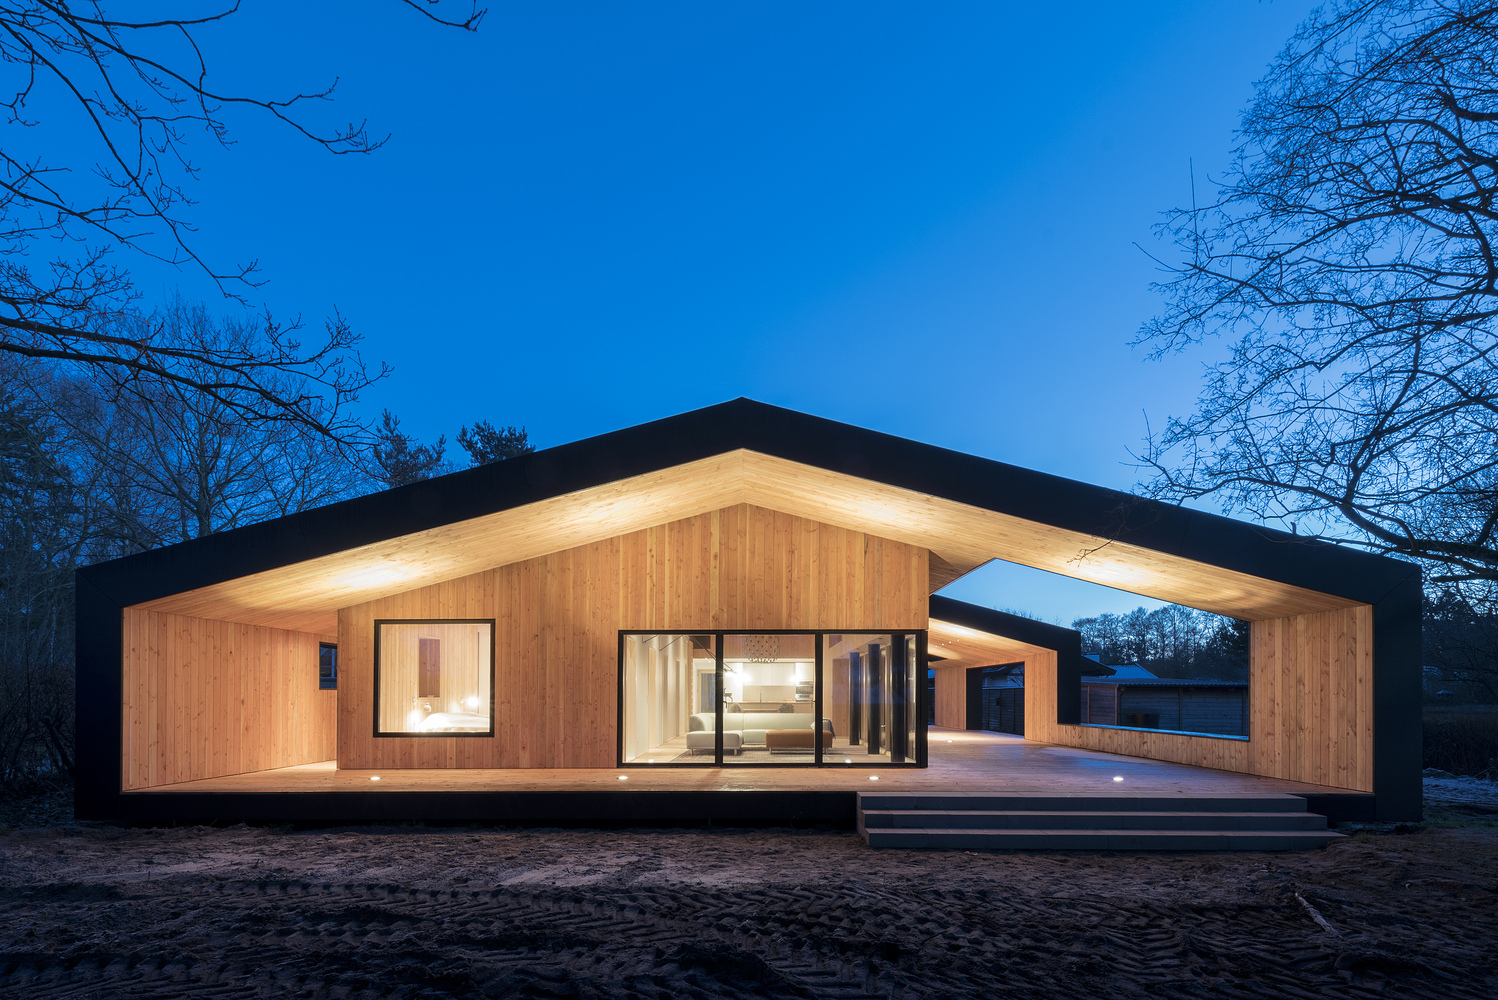 Summer House By Cebra Archiscene Your Daily Architecture